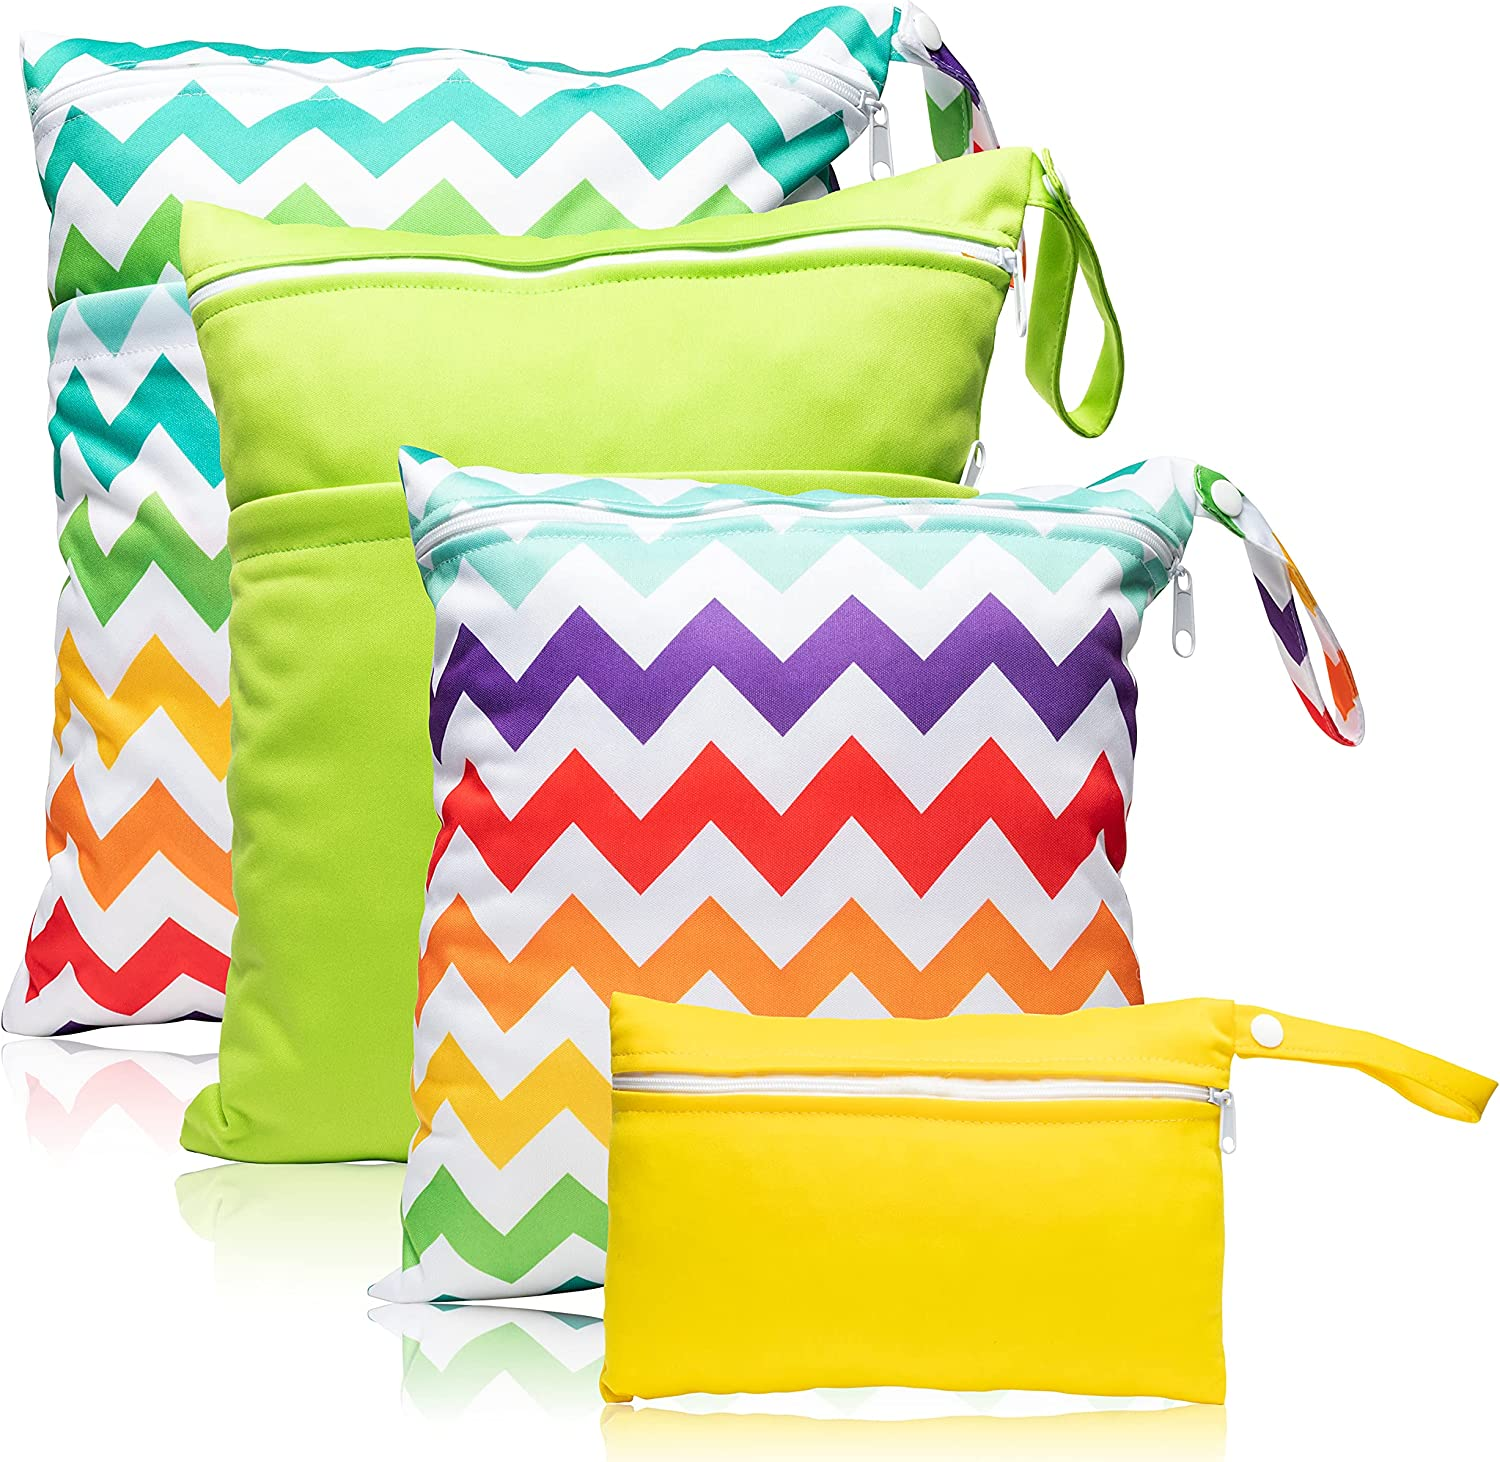 R HORSE 4Pcs Waterproof Reusable Wet Bag Diaper Baby Cloth Diaper Bag Colorful Ripple Yellow Green Wet Dry Bags with 2 Zippered Pockets Travel Beach Pool Bag (3 Sizes)